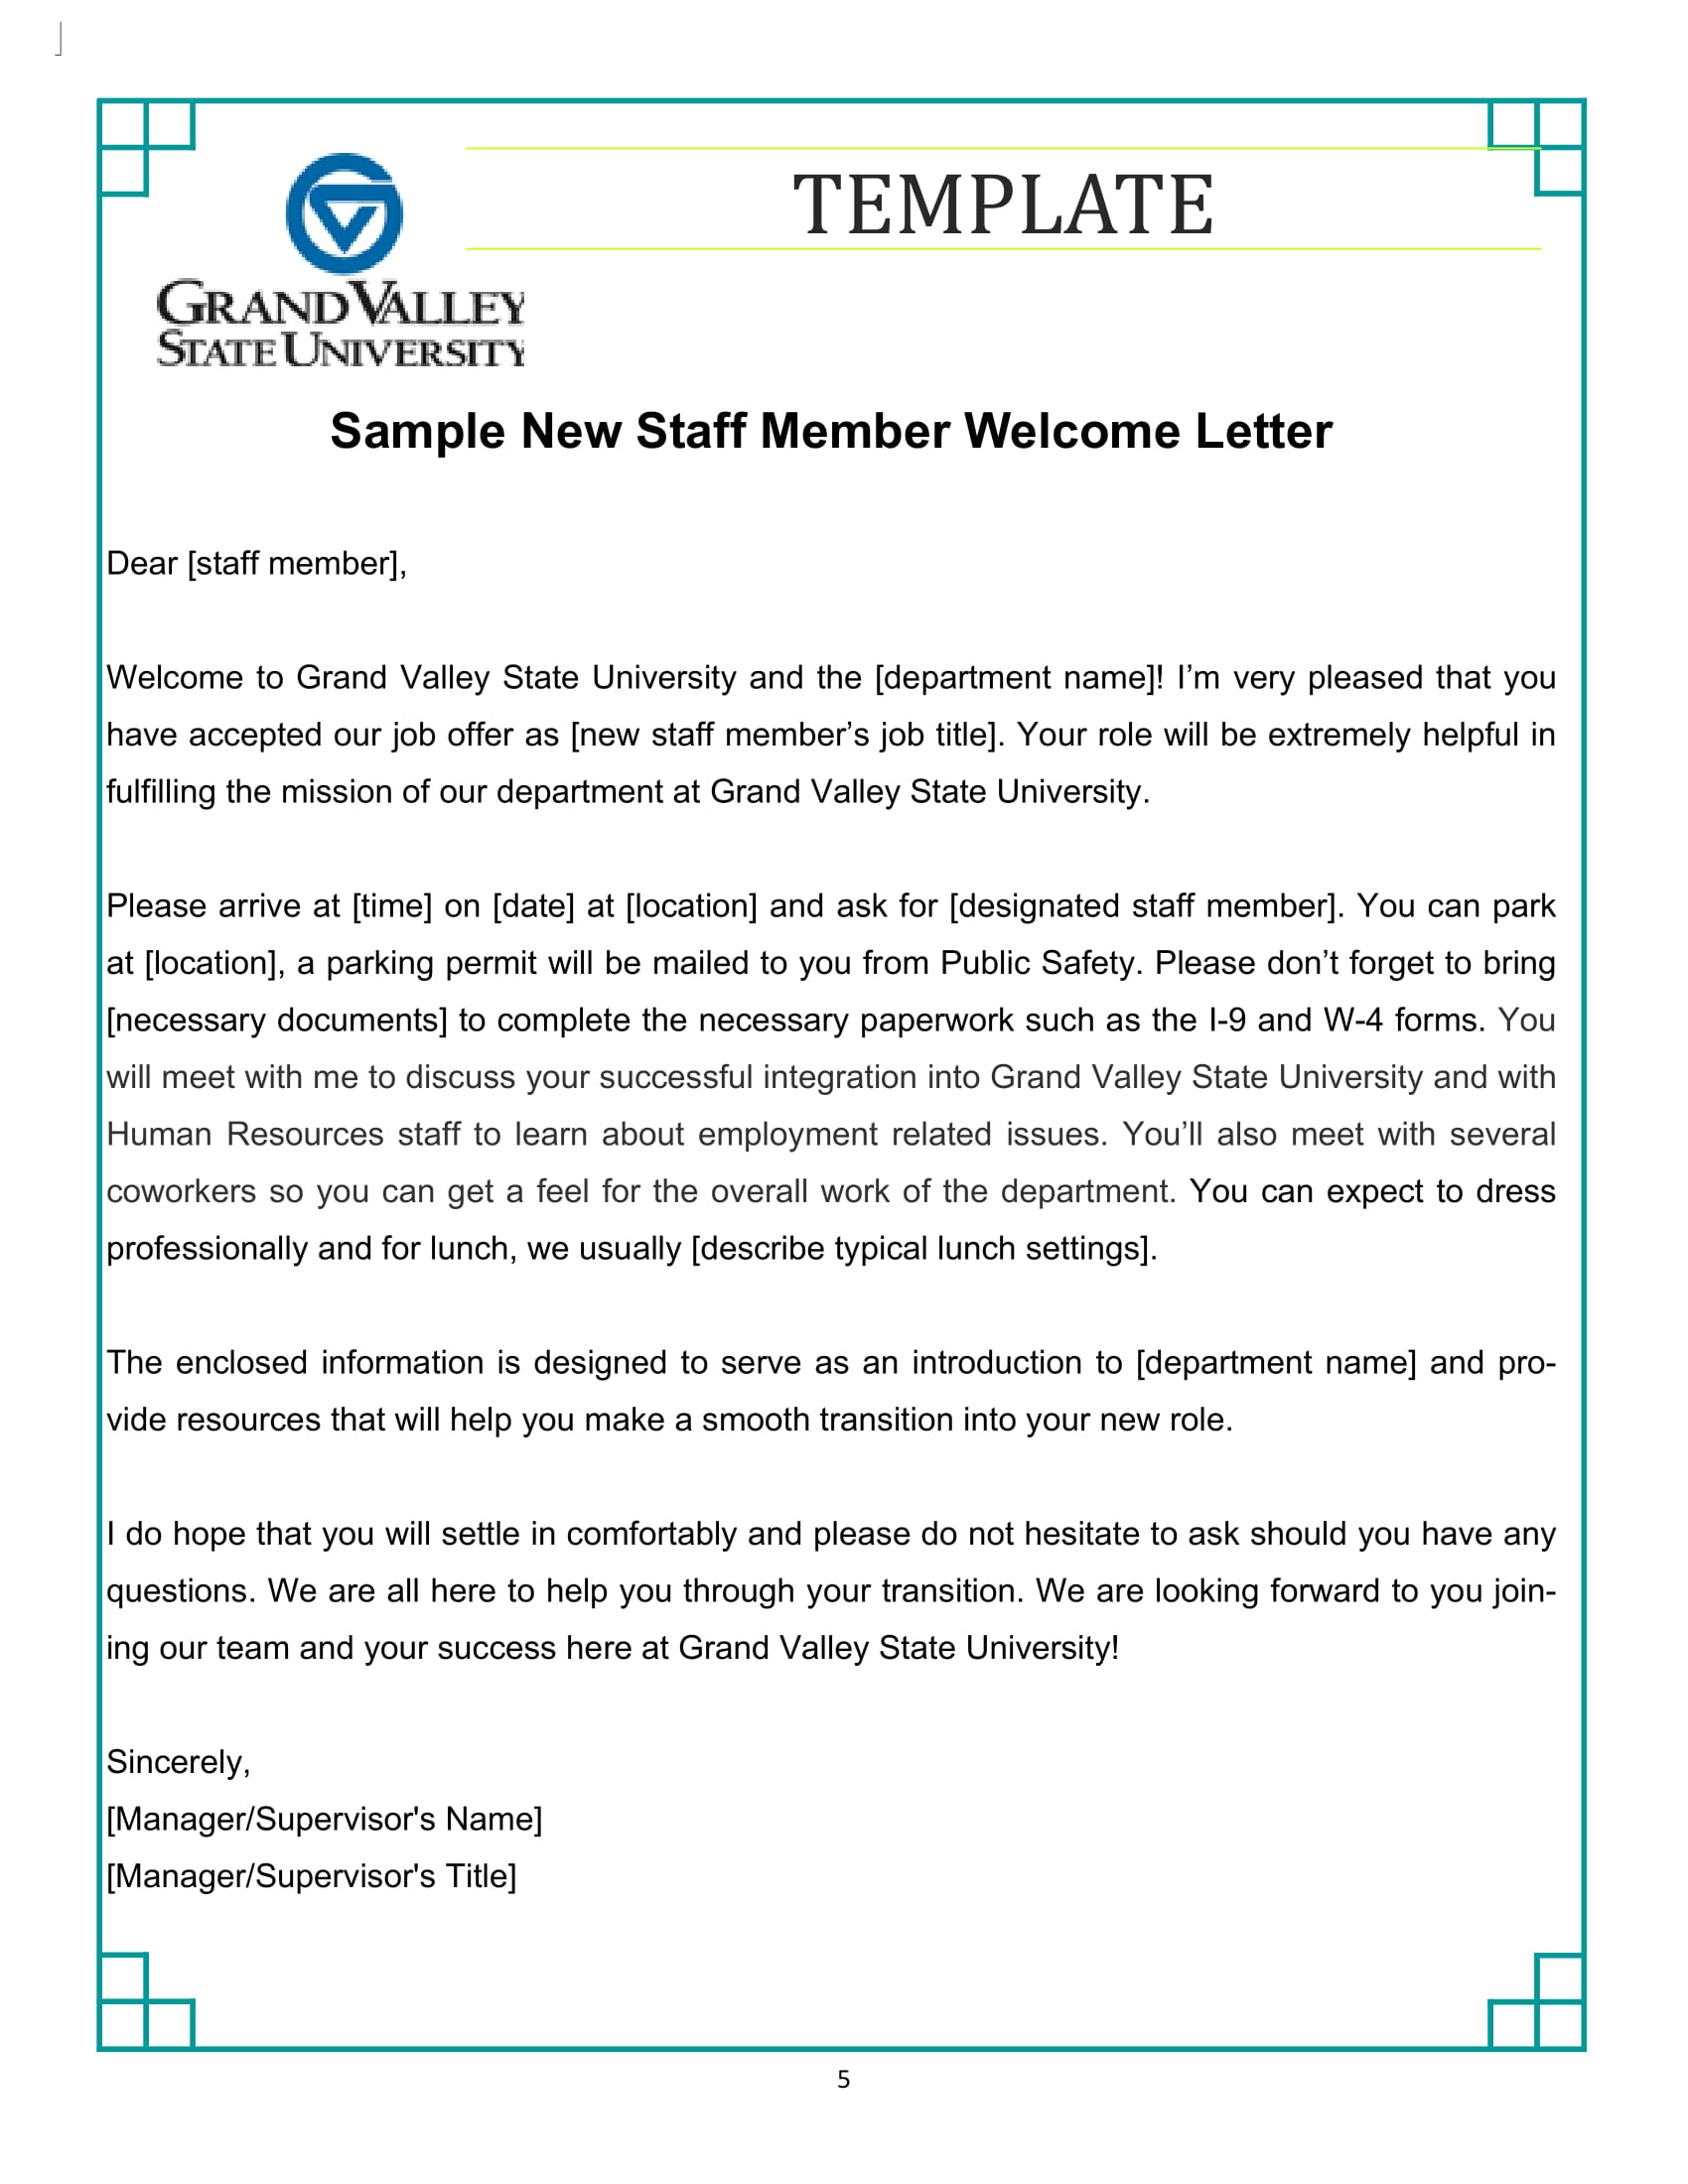 New Staff Welcome Letter Template Example